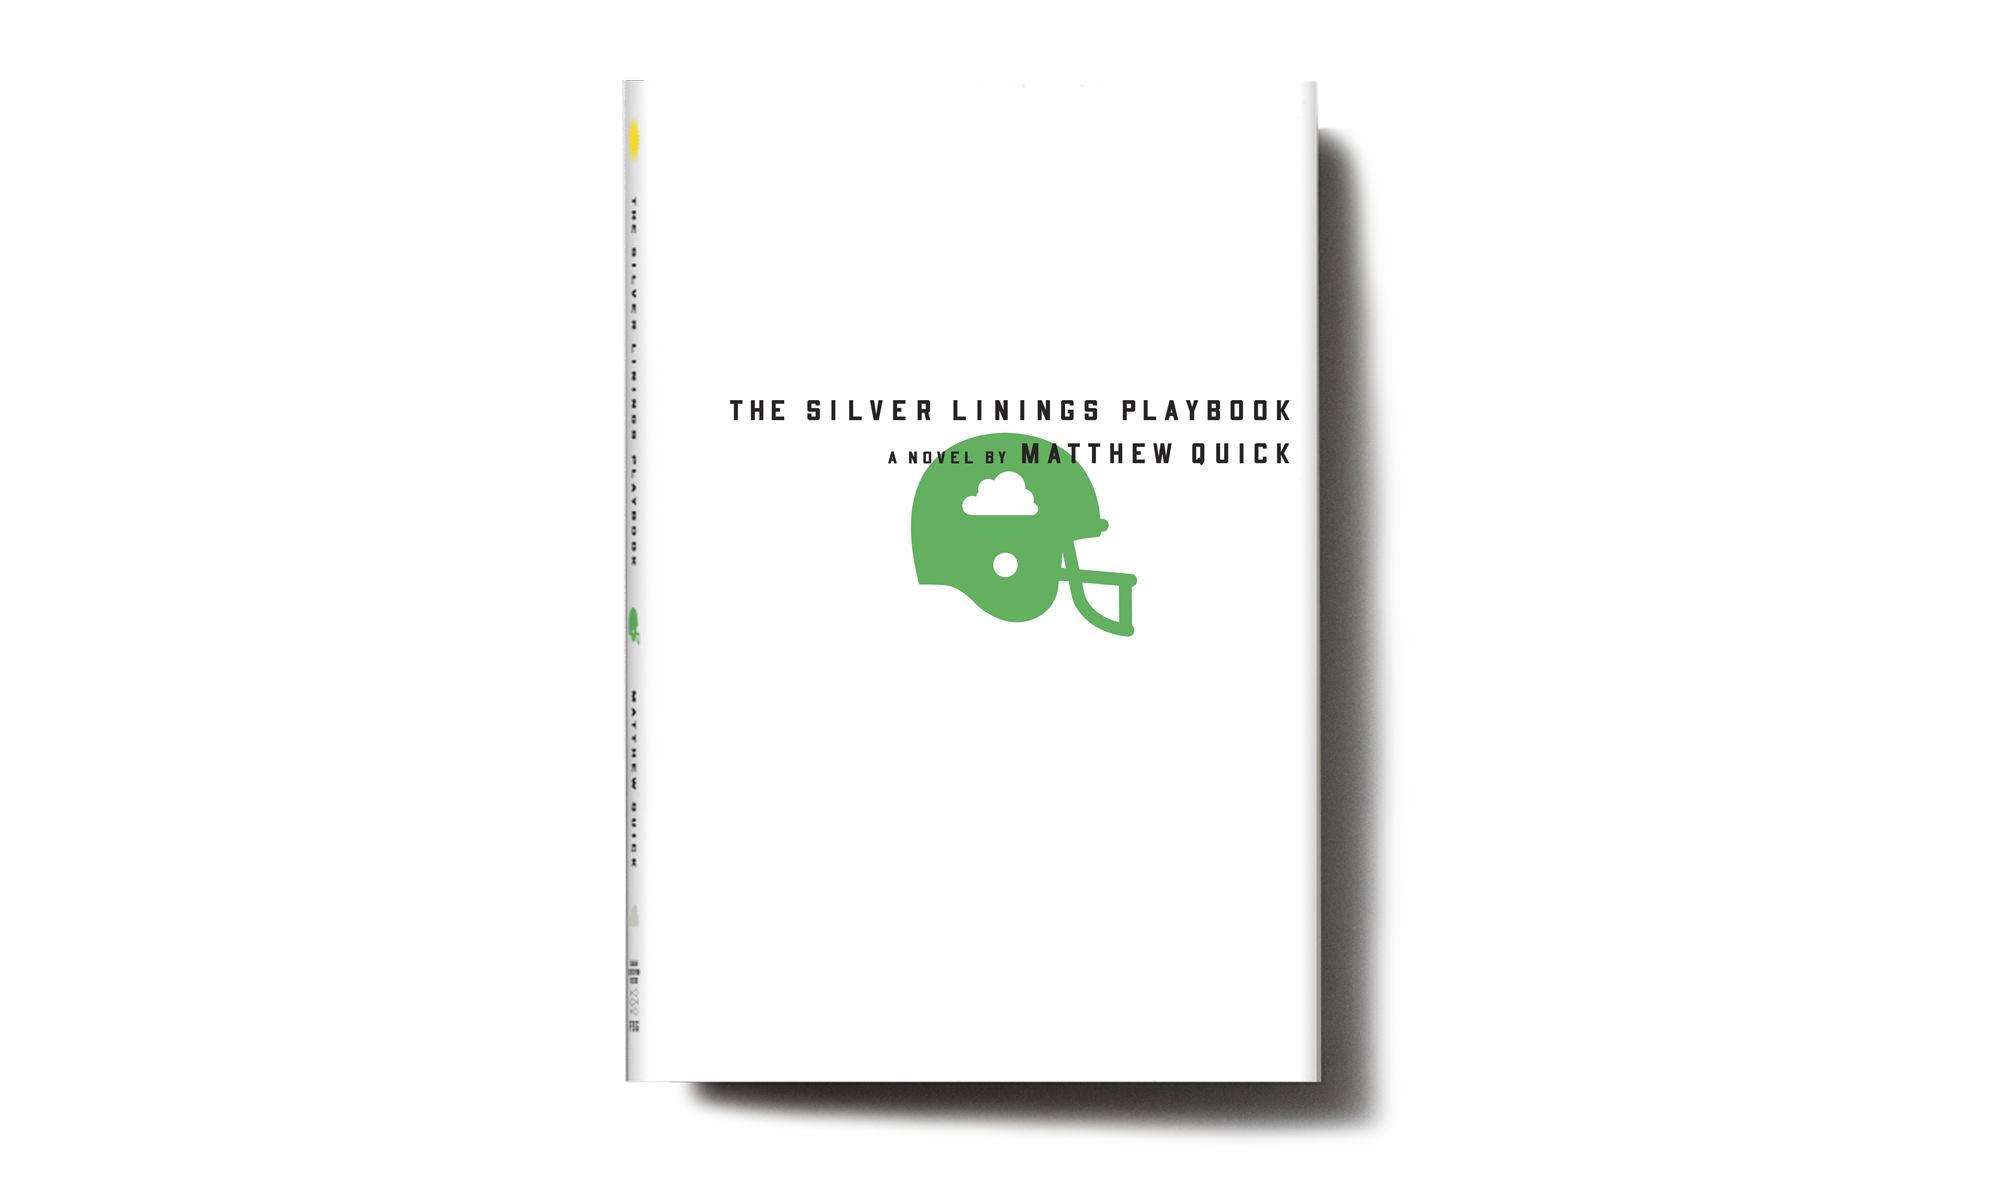 SILVRLINGINGPLAYBOOK_PLATE copy.png